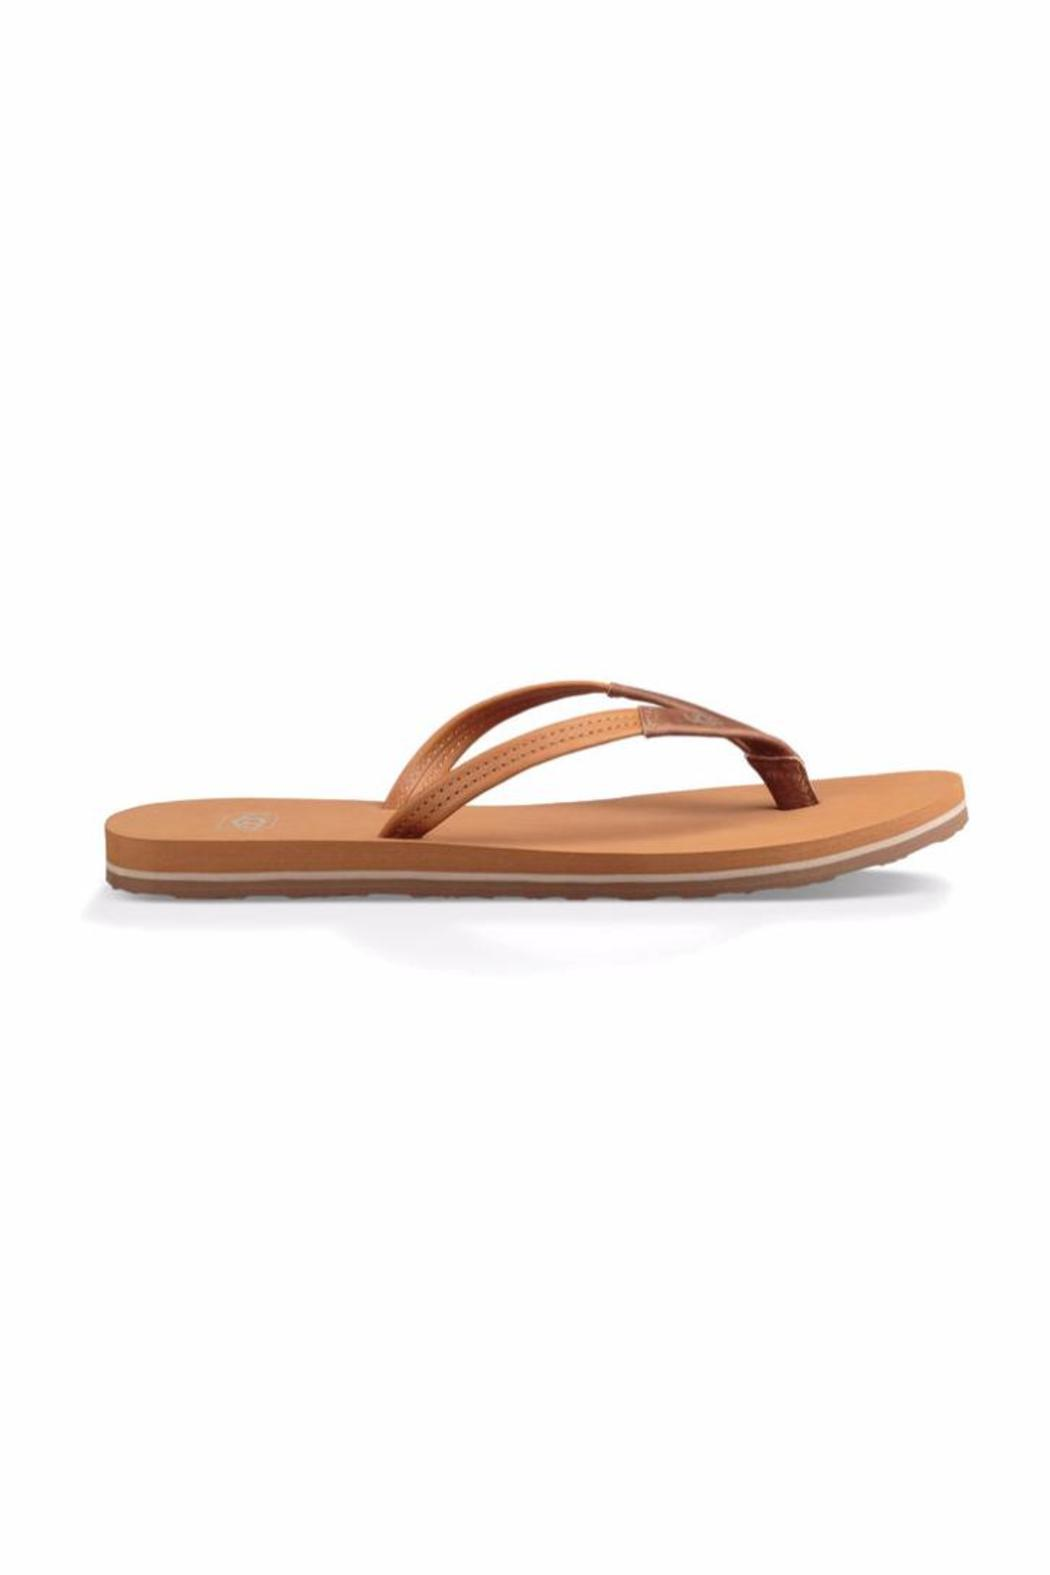 Ugg Australia Ugg Magnolia Flip Flop From Los Angeles By -2906